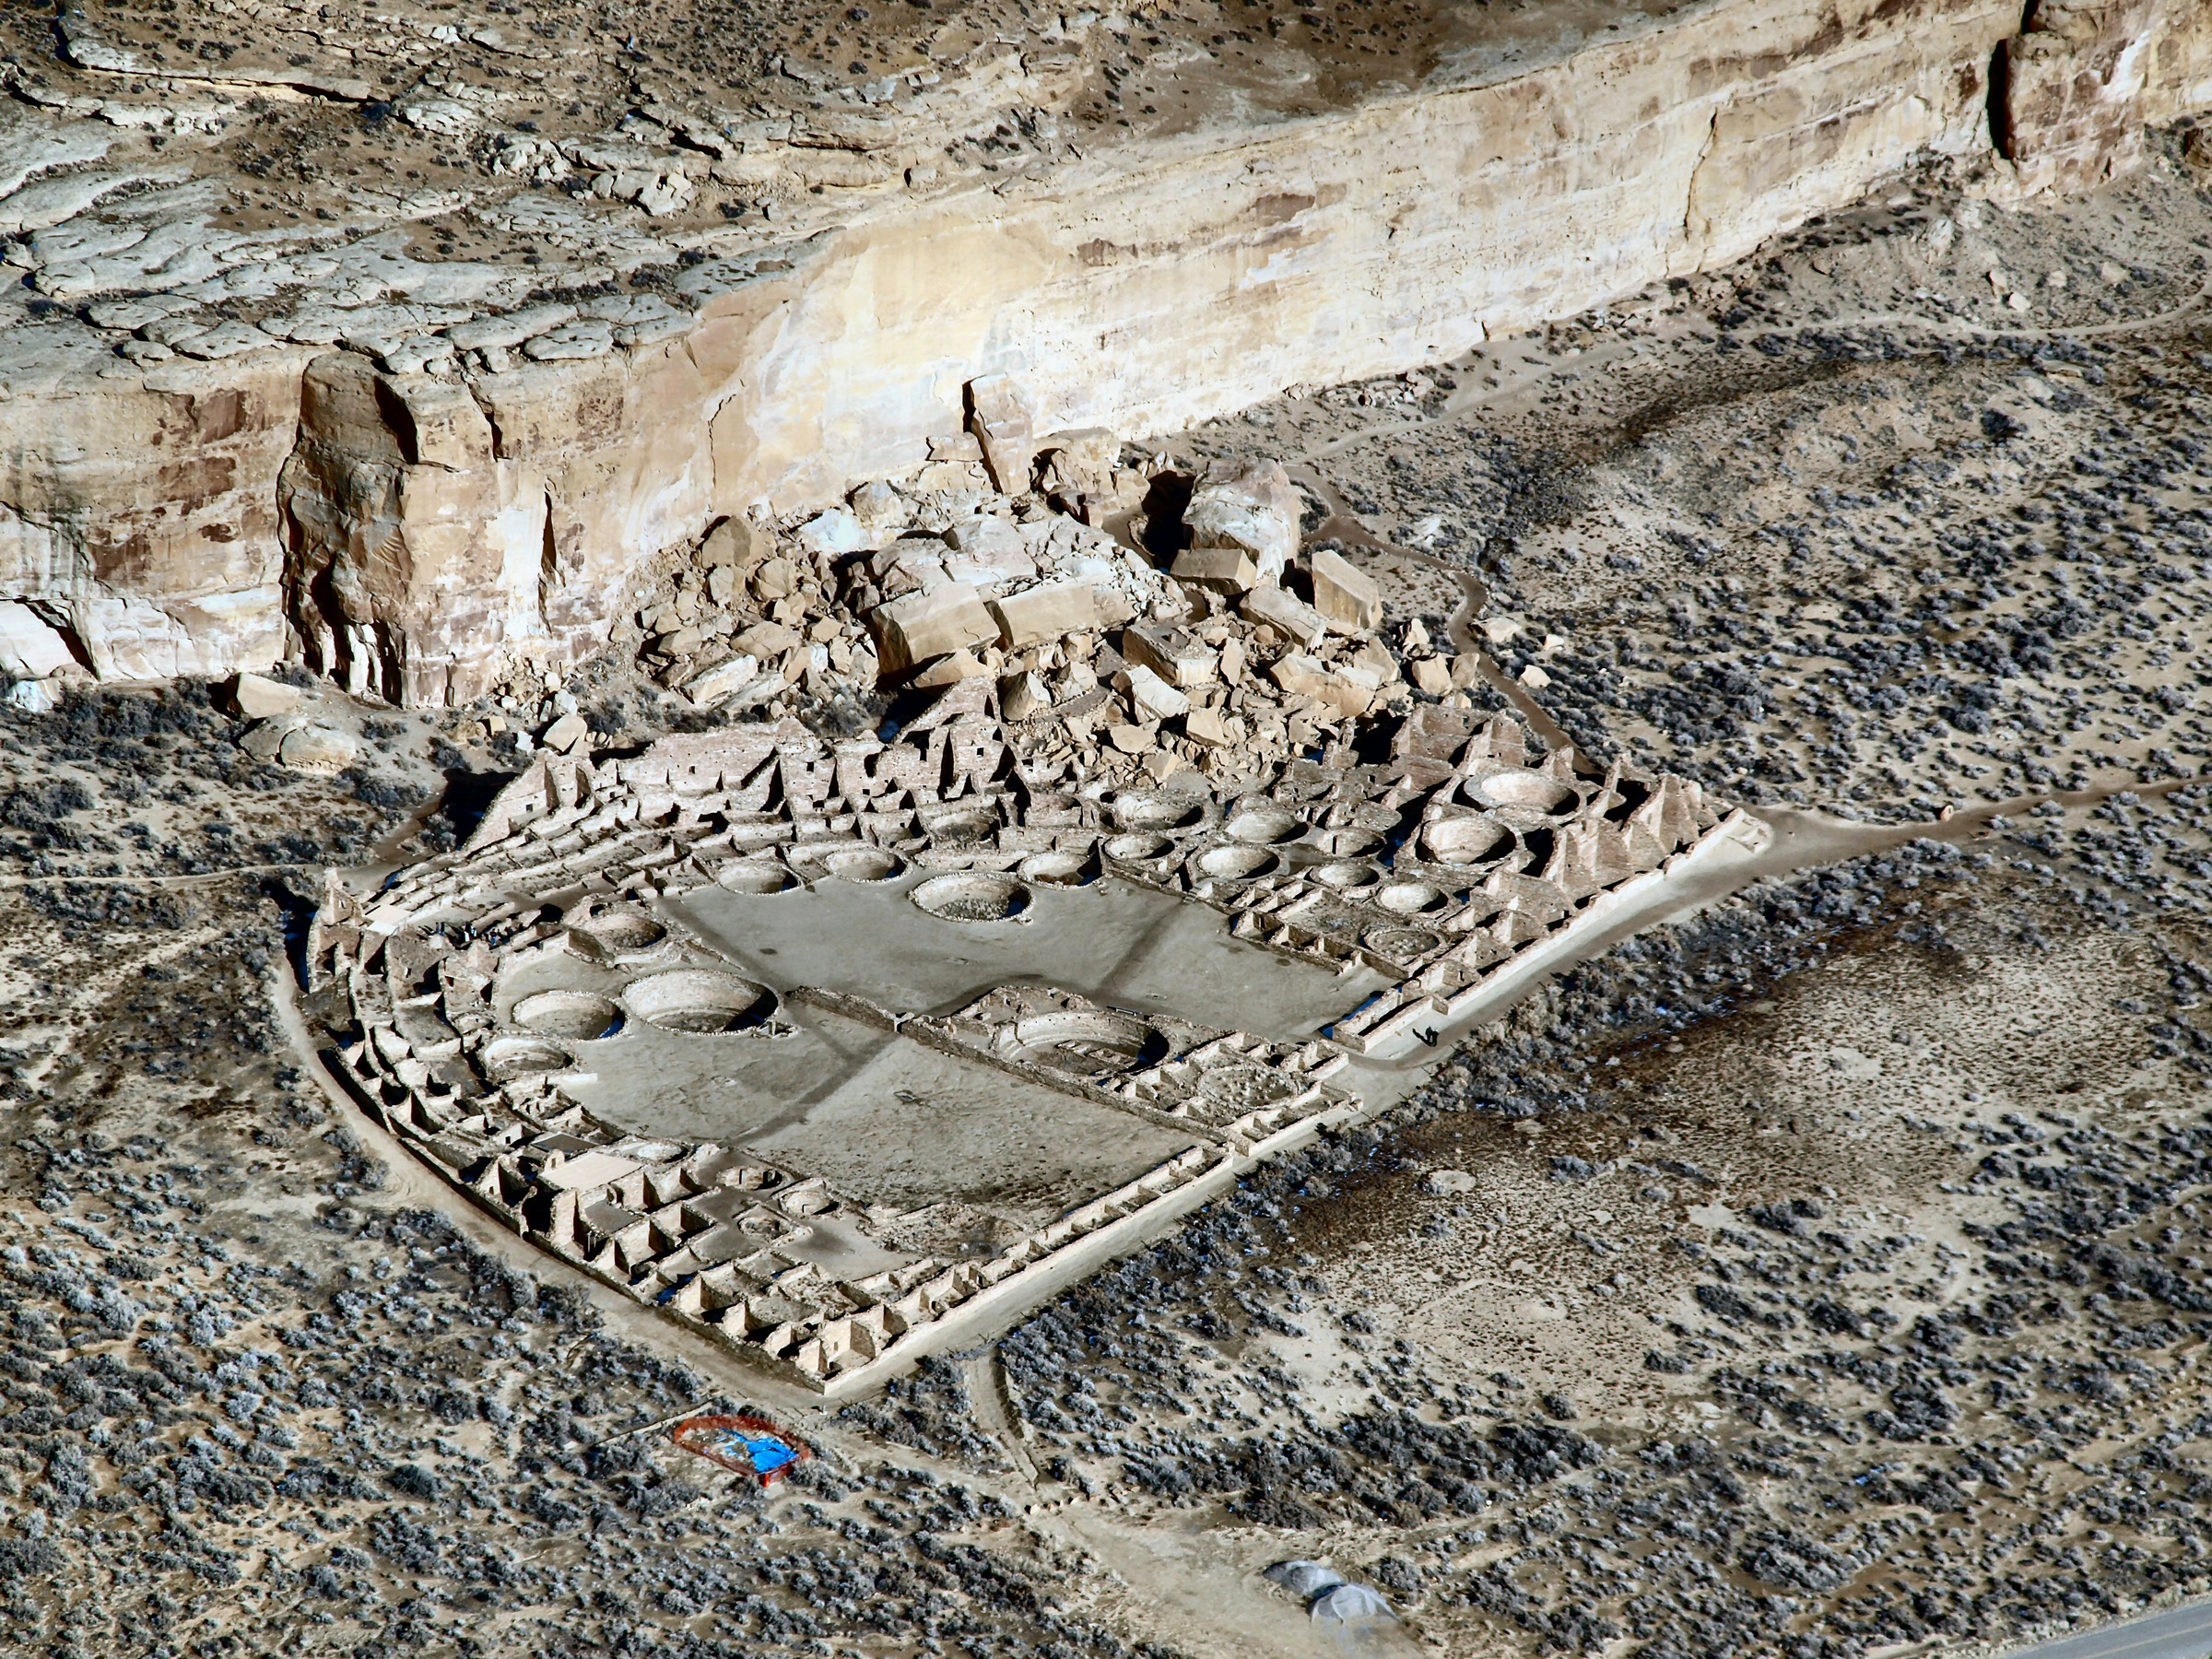 Archaeology and Place at Chaco Canyon